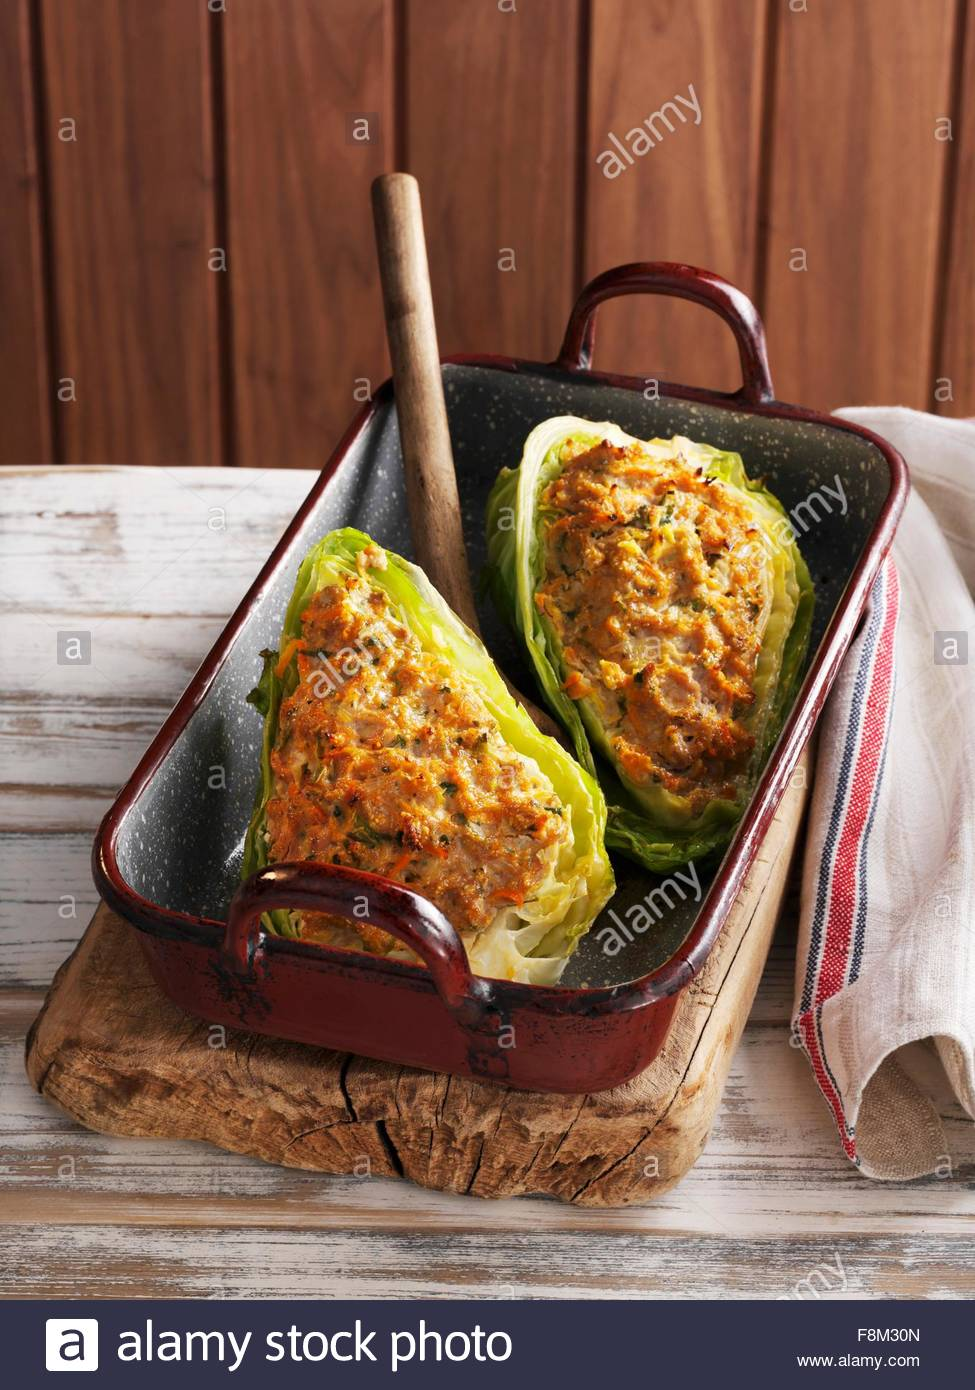 Stuffed pointed cabbage - Stock Image